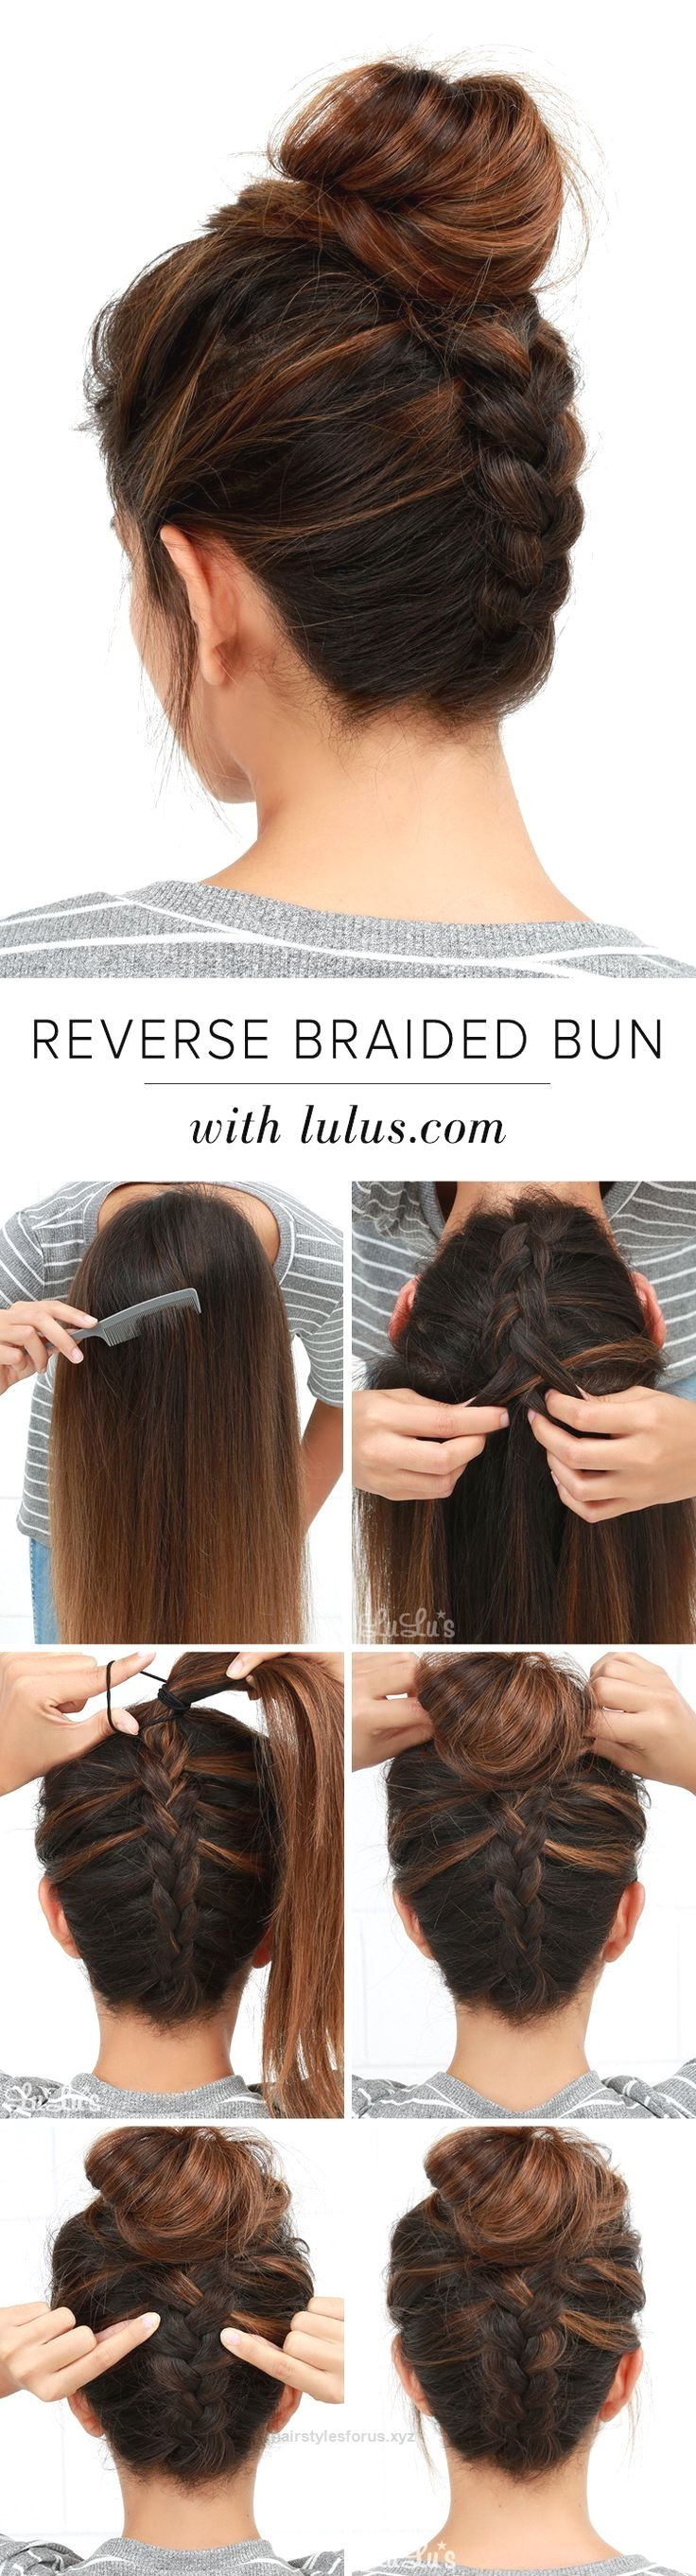 Unbelievable LuLu*s How-To: Reverse Braided Bun Hair Tutorial at www.lulus.com! The post LuLu*s How-To: Reverse Braided Bun Hair Tutorial at www.lulus.com!… appeared first on Hairstyles .